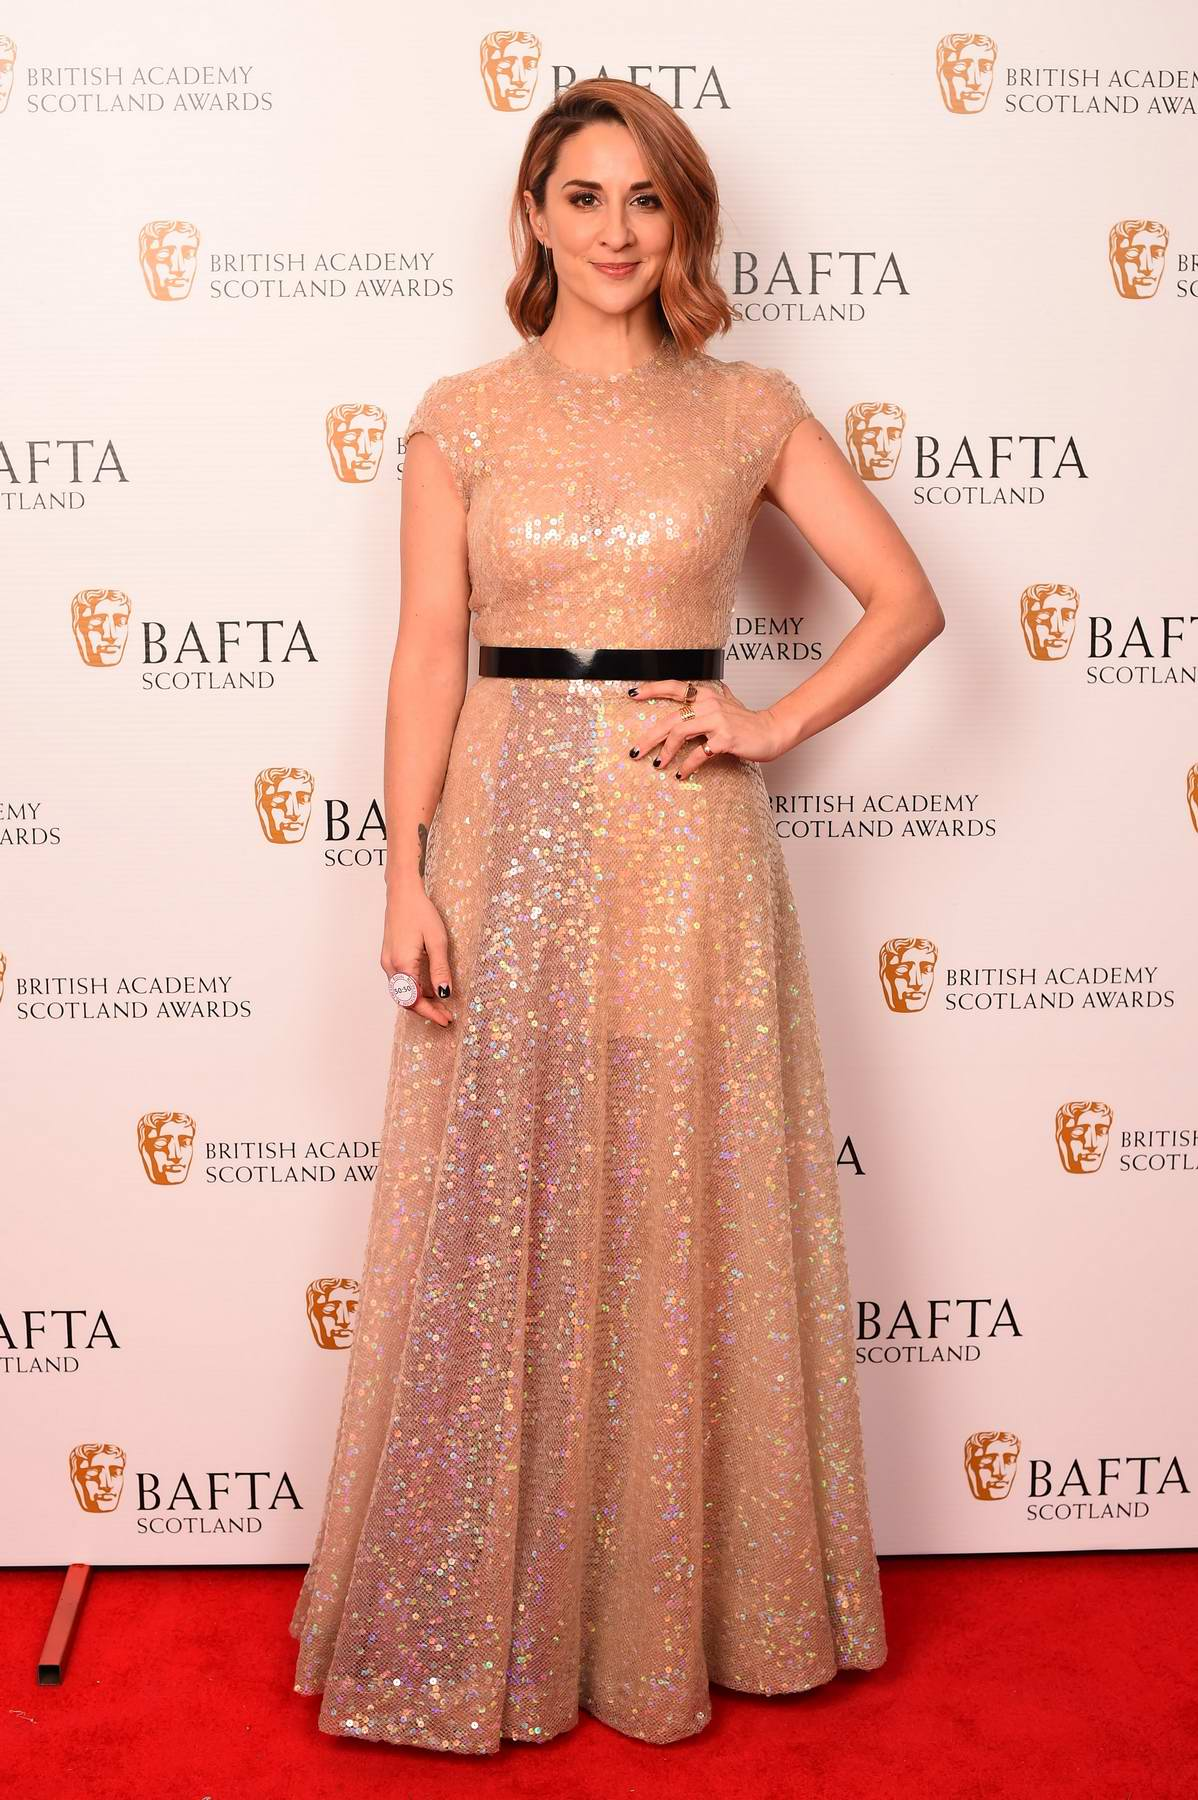 Morven Christie at the British Academy Scotland Awards in Glasgow, Scotland